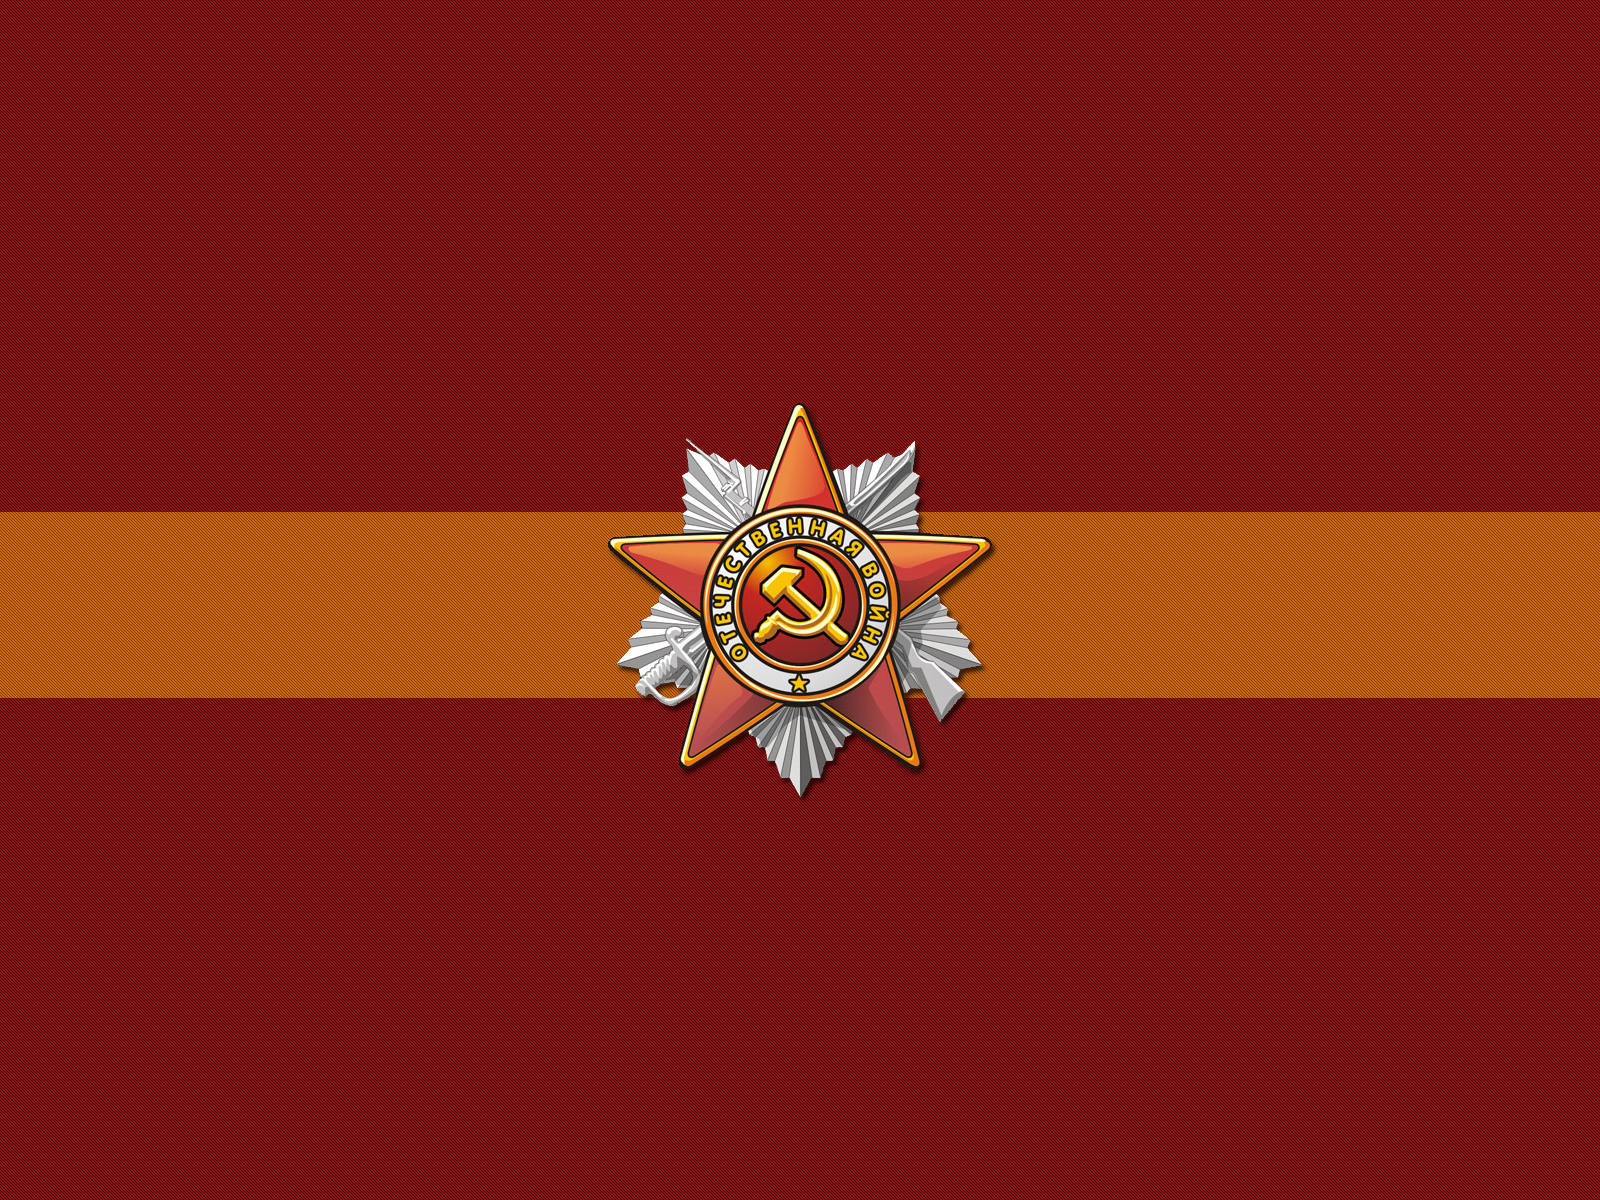 Communist Iphone Wallpaper Communism Wallpaper And Background Image 1600x1200 Id